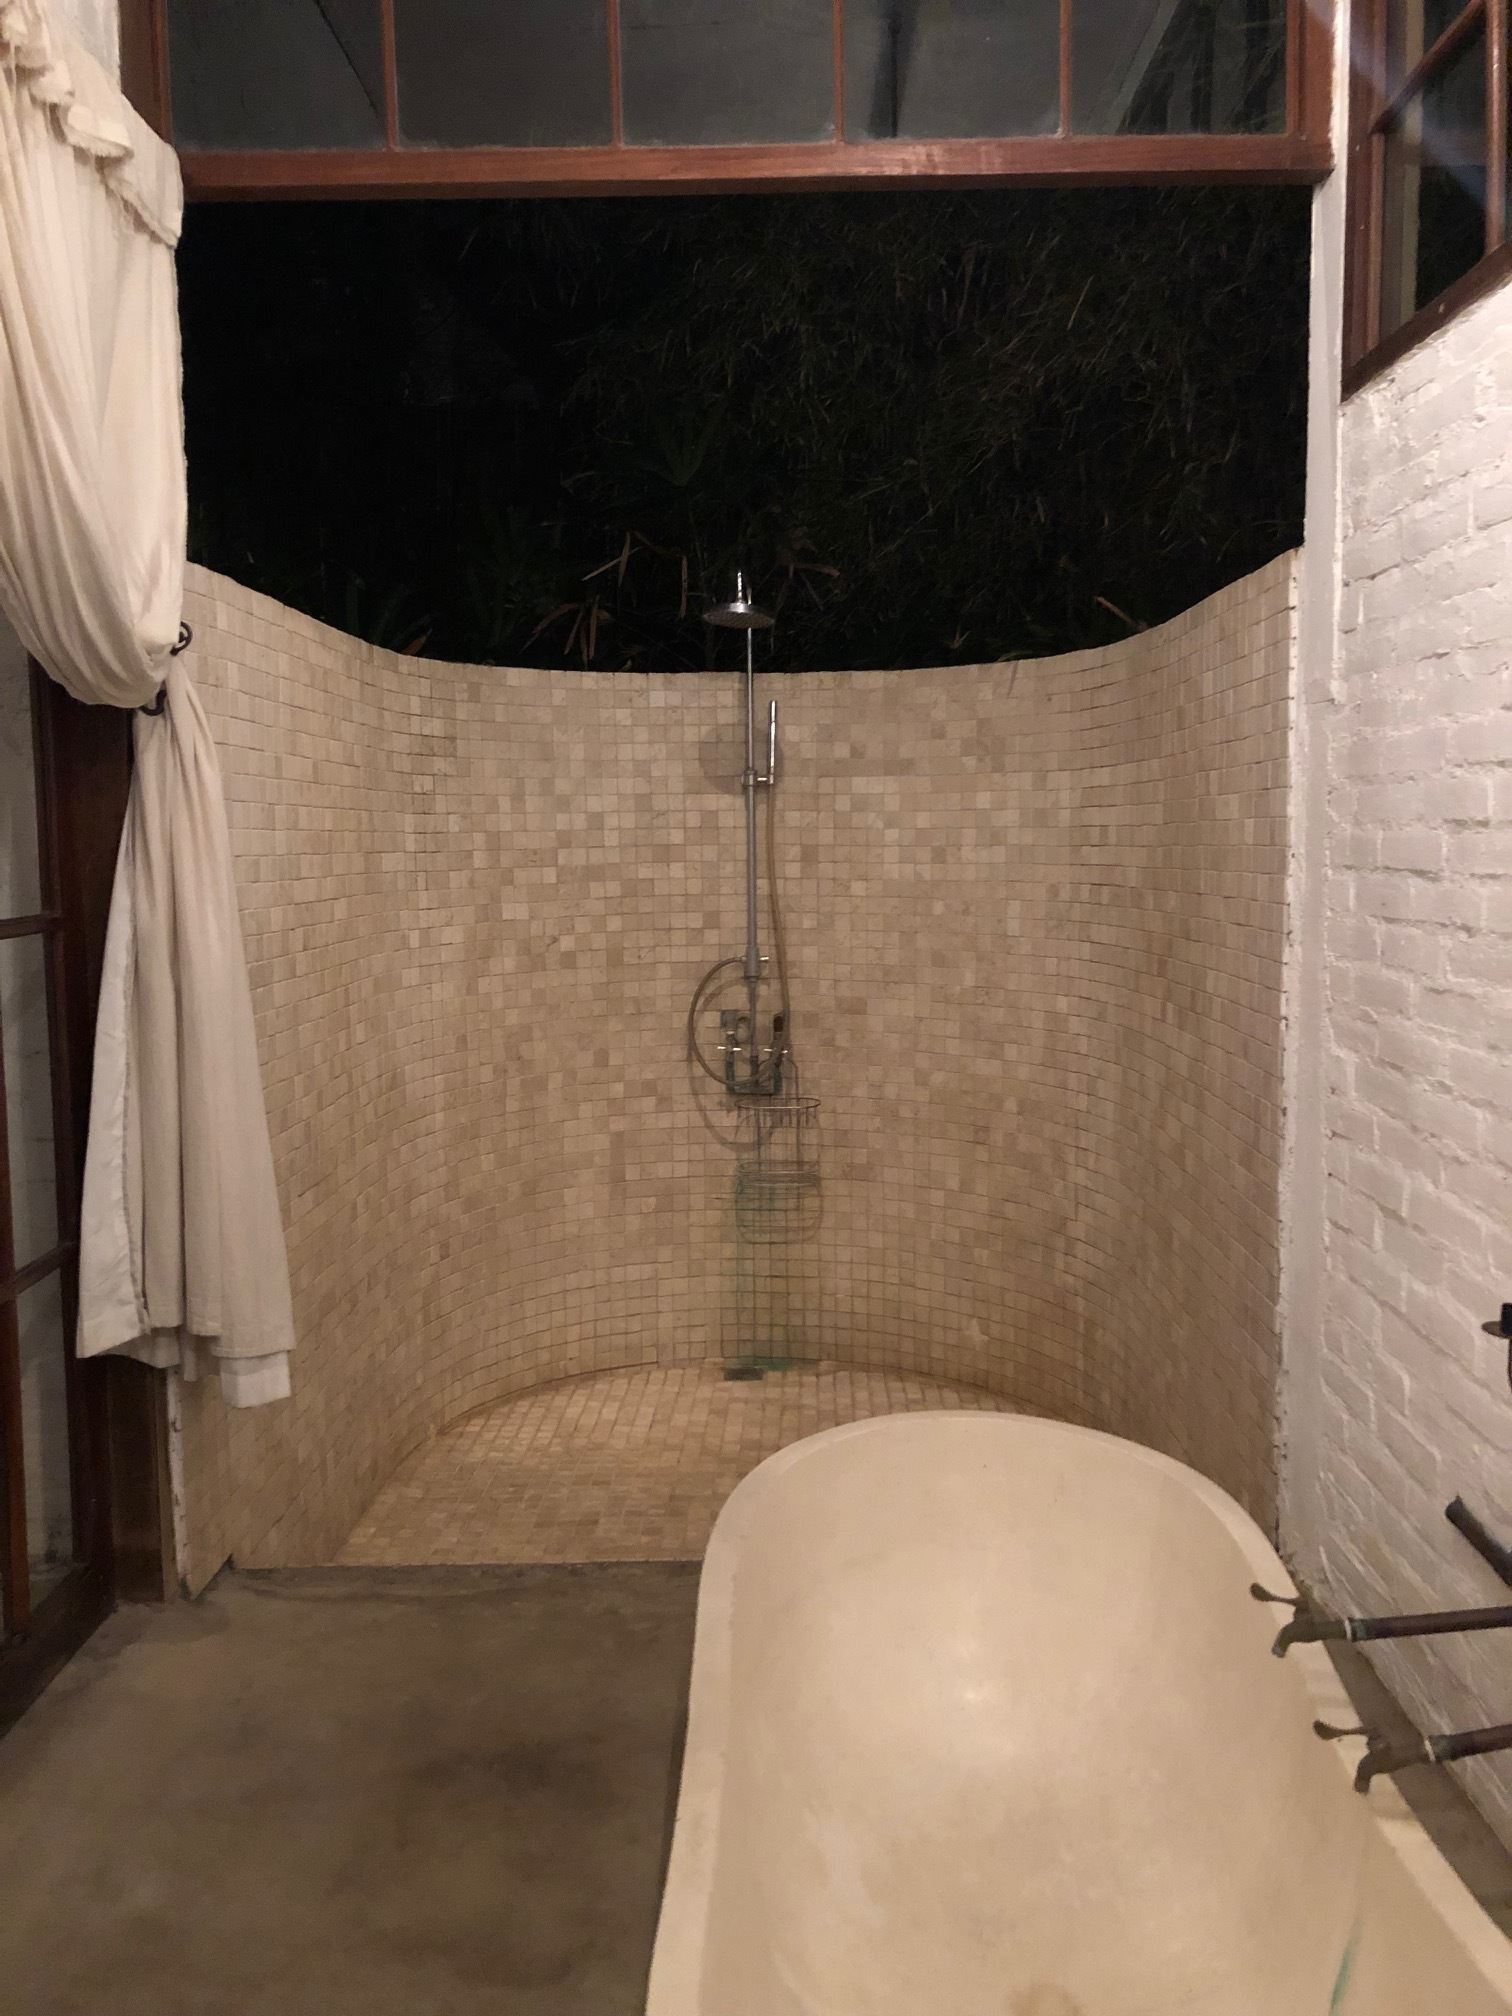 Out door shower and tub.